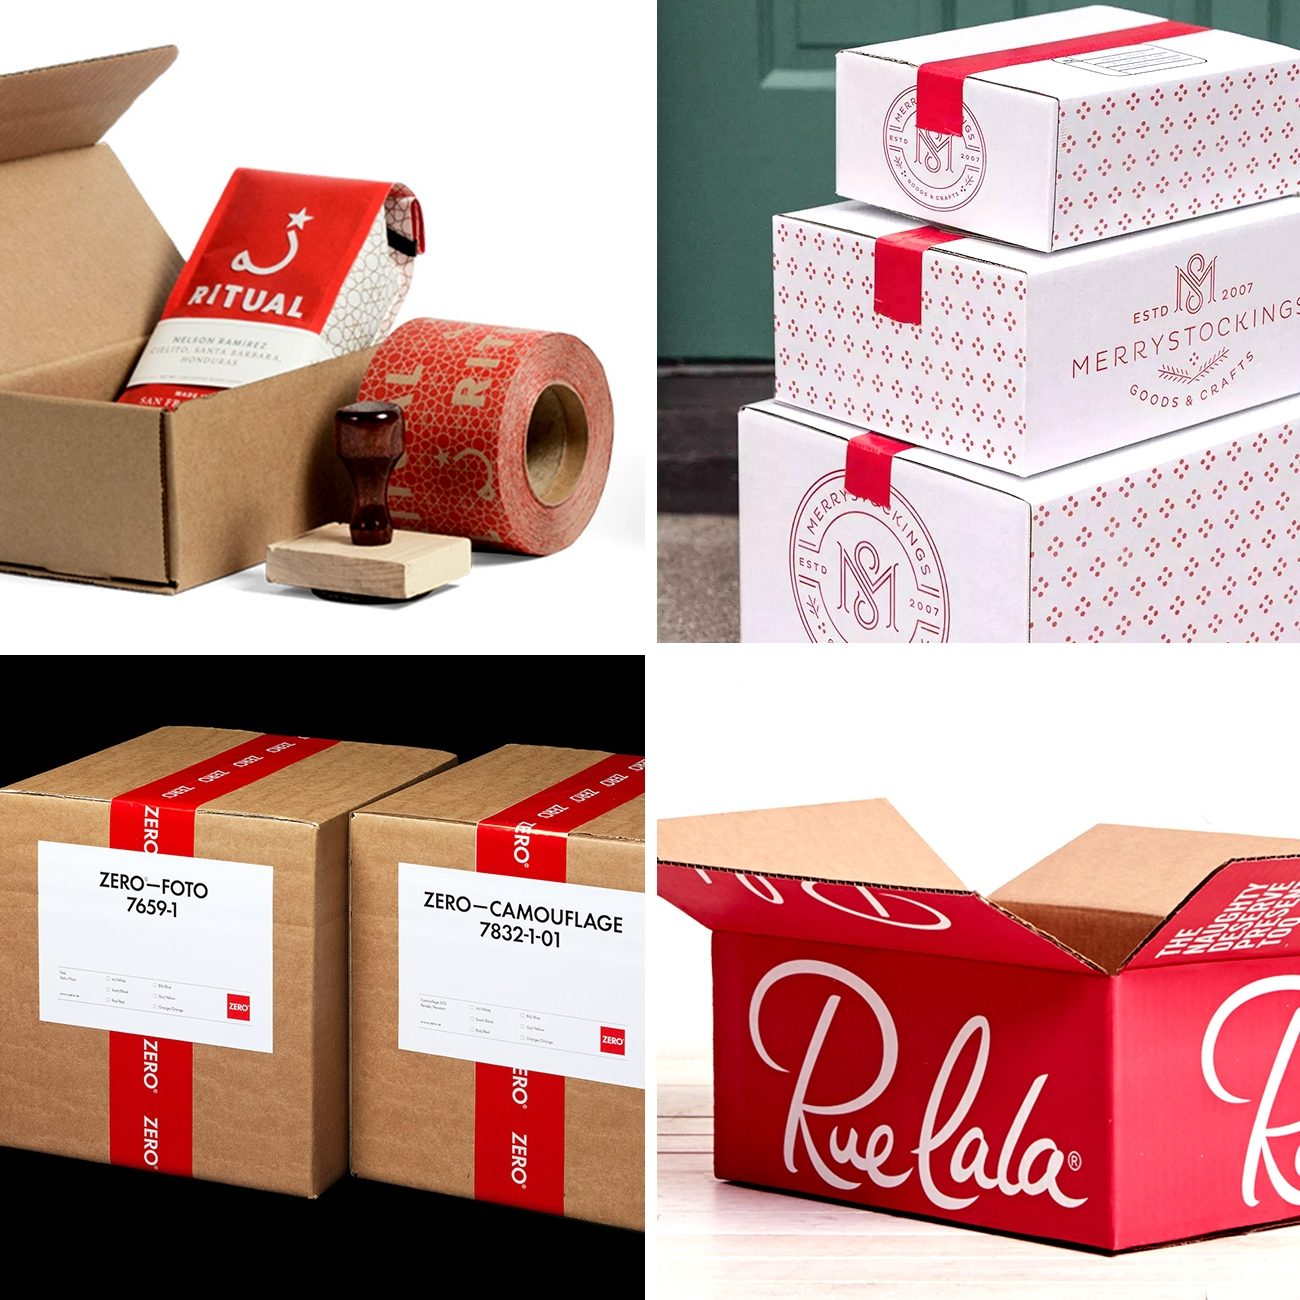 60 Ideas To Spruce Up Your Holiday Packaging Design. Photos Via: Page Three  Hundred, Lumi.com, Studio MPLS, Henrik Nygren